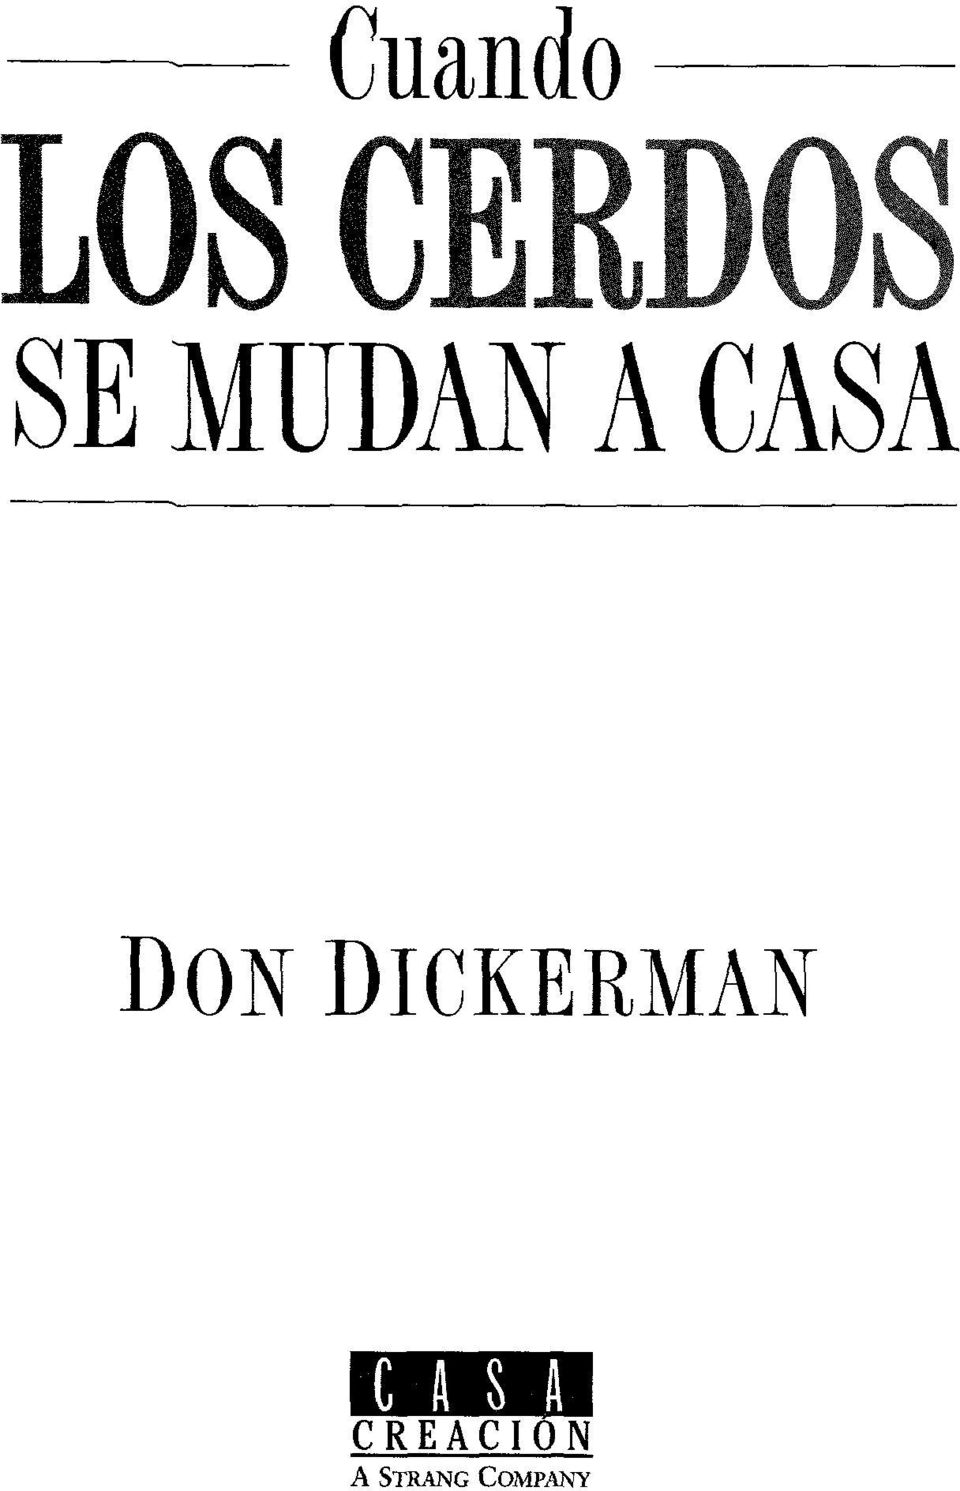 DICKERMAN e A S A